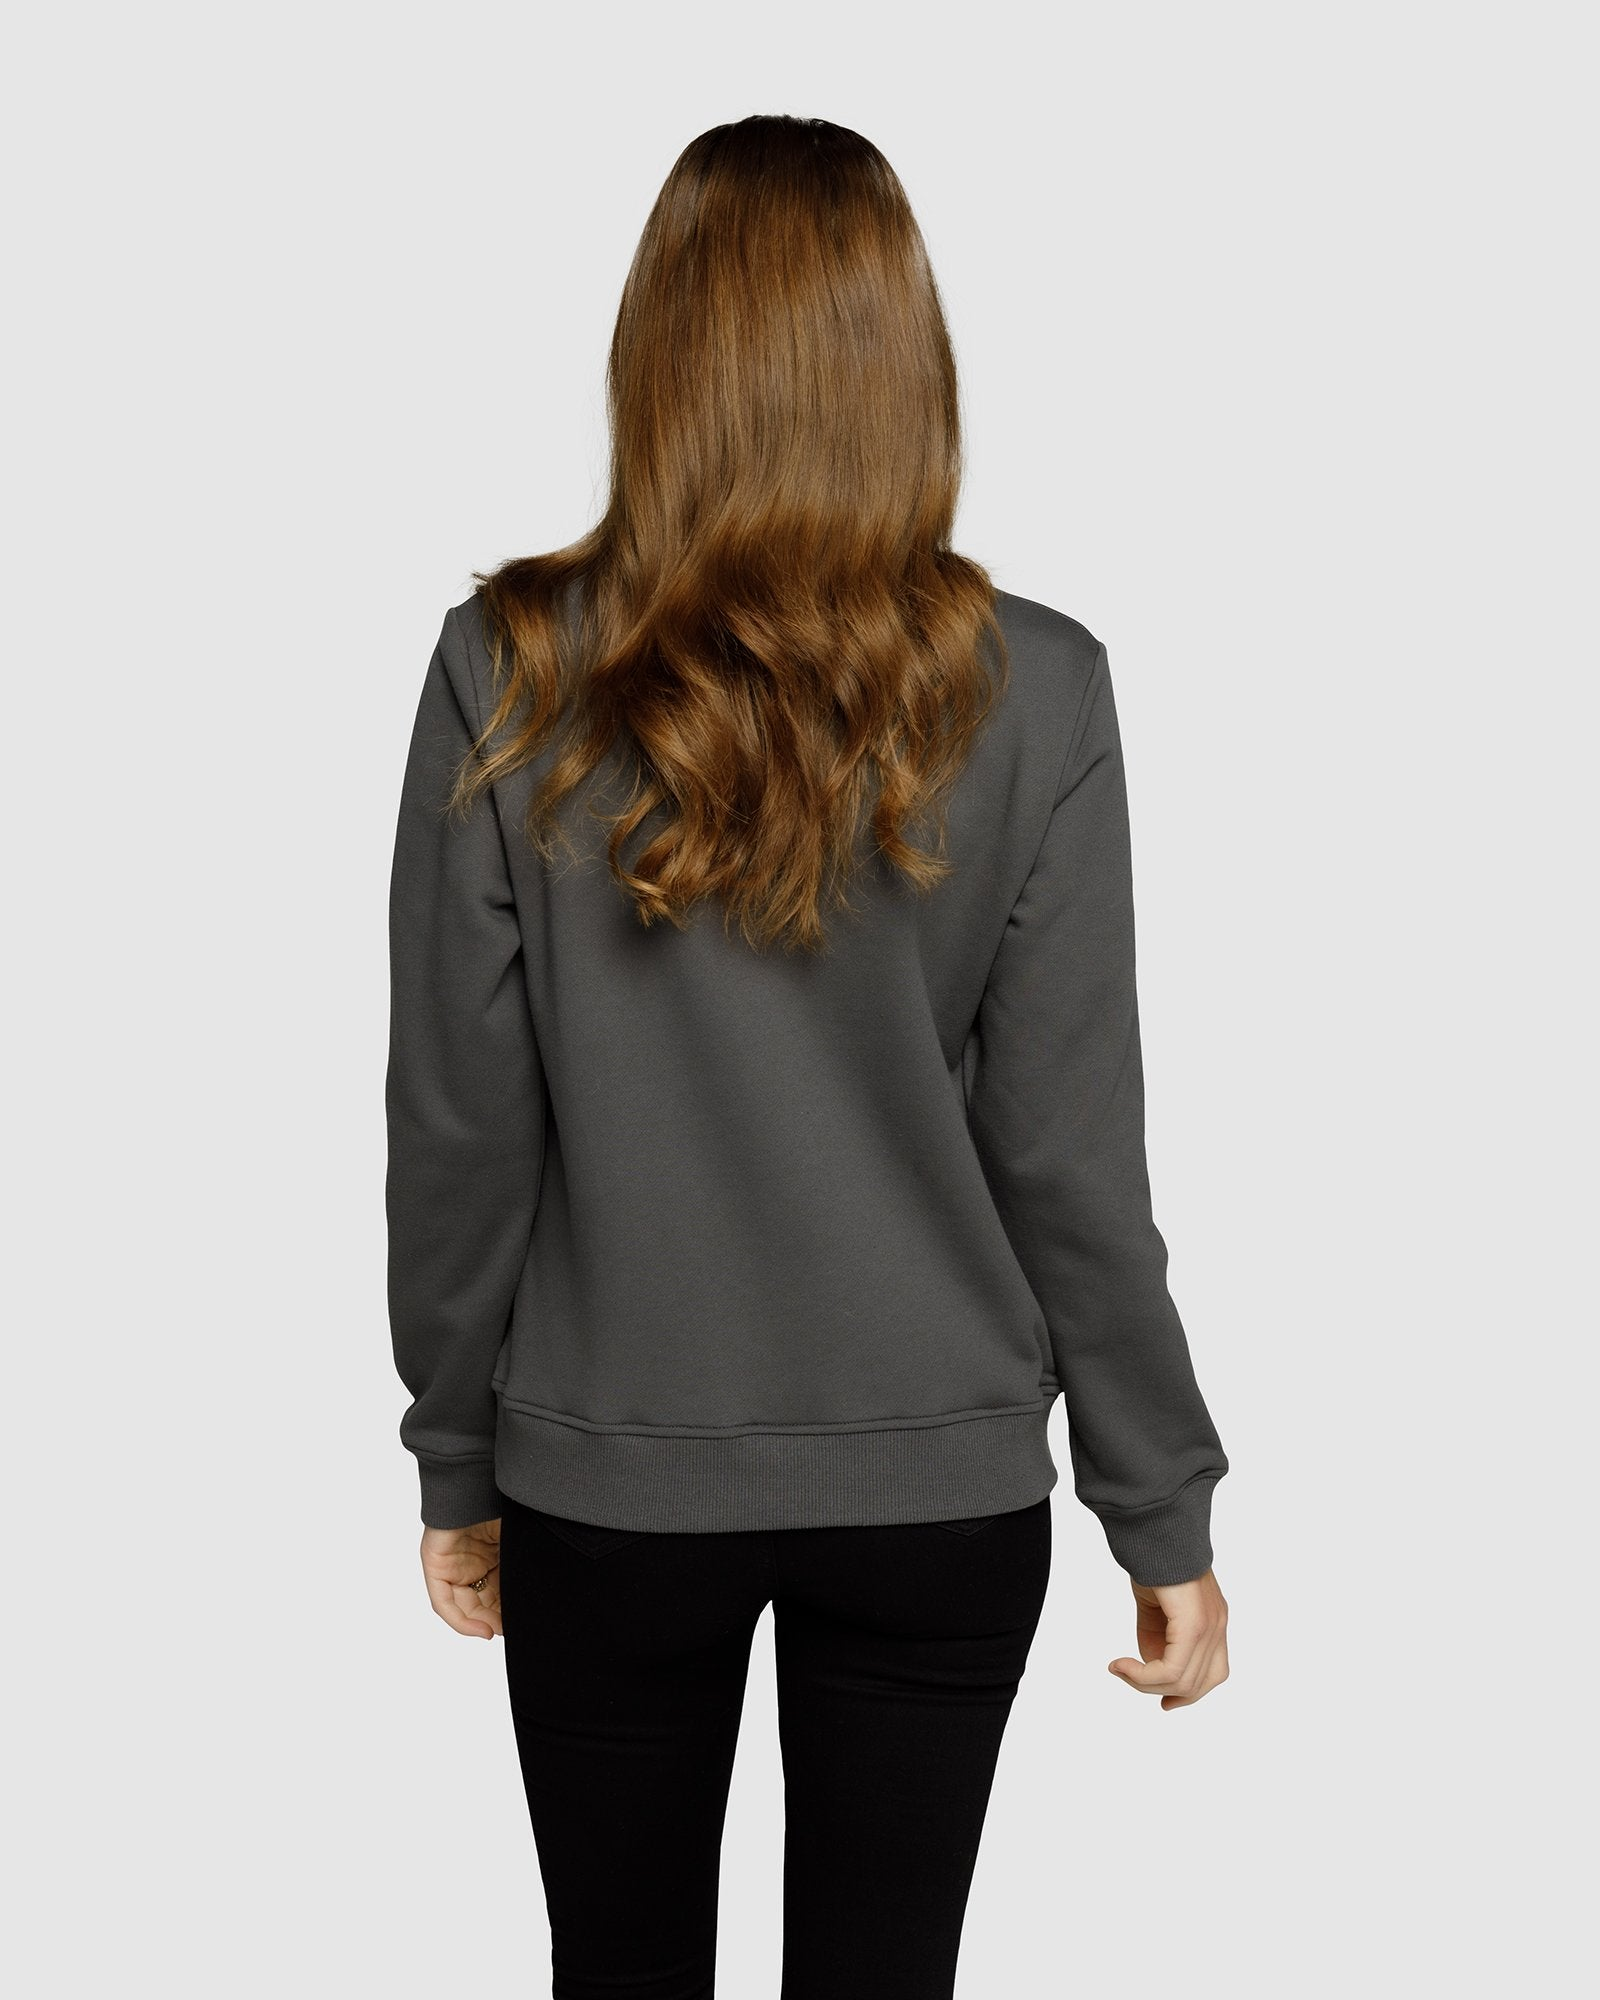 APERO EMBROIDERED JUMPER - CHARCOAL/BLACK